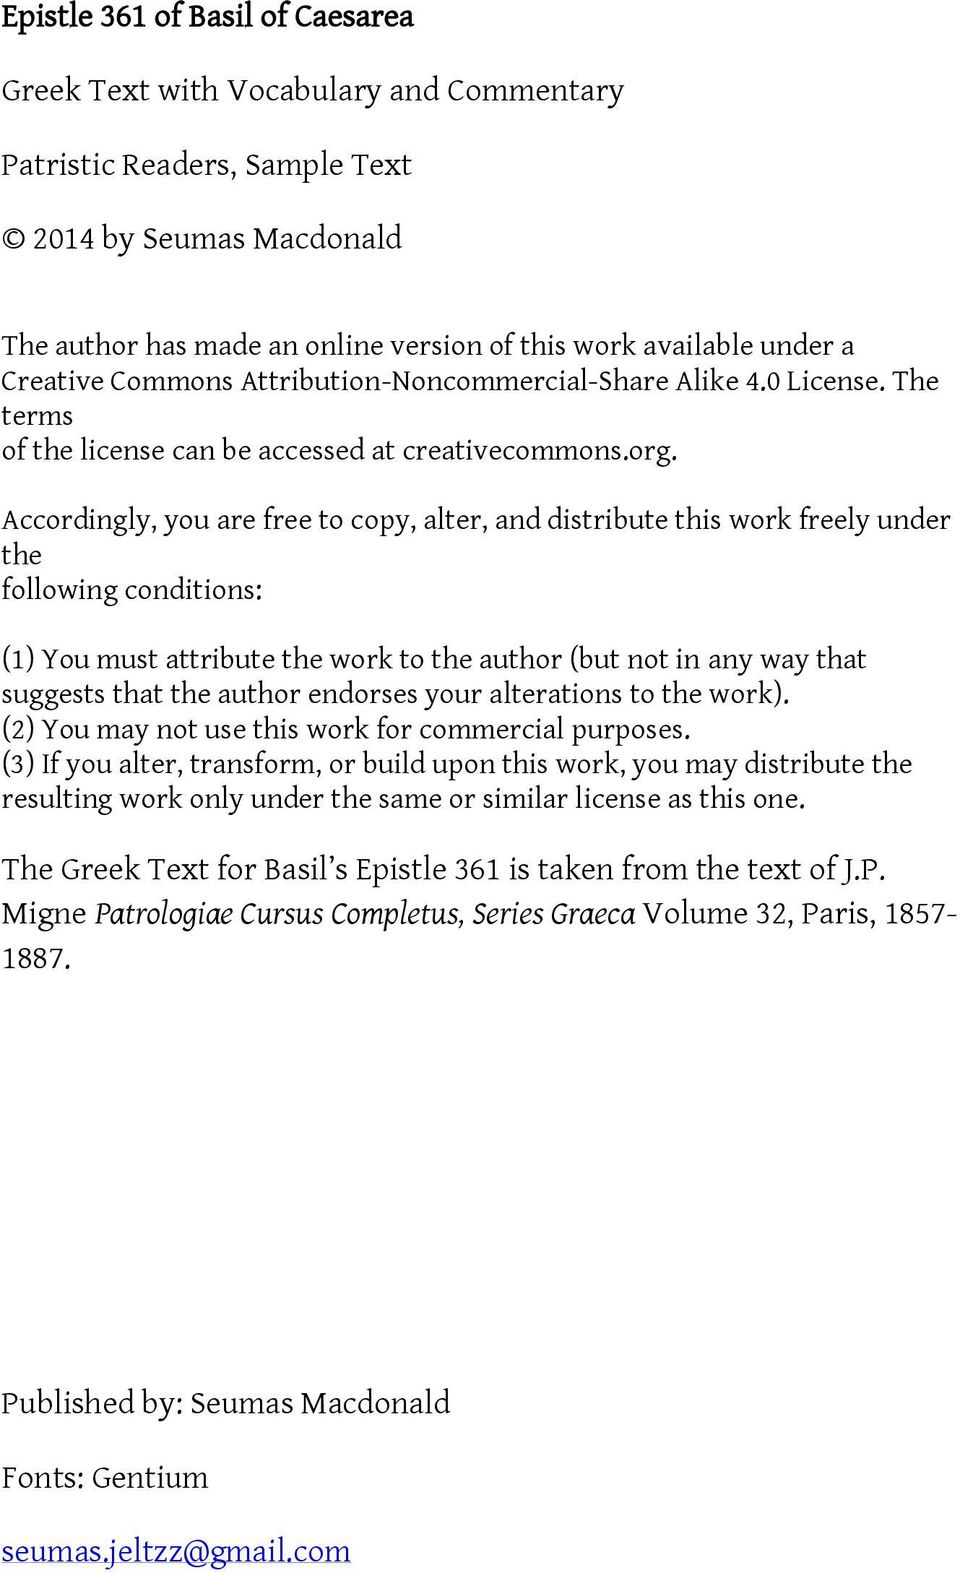 Accordingly, you are free to copy, alter, and distribute this work freely under the following conditions: () You must attribute the work to the author (but not in any way that suggests that the